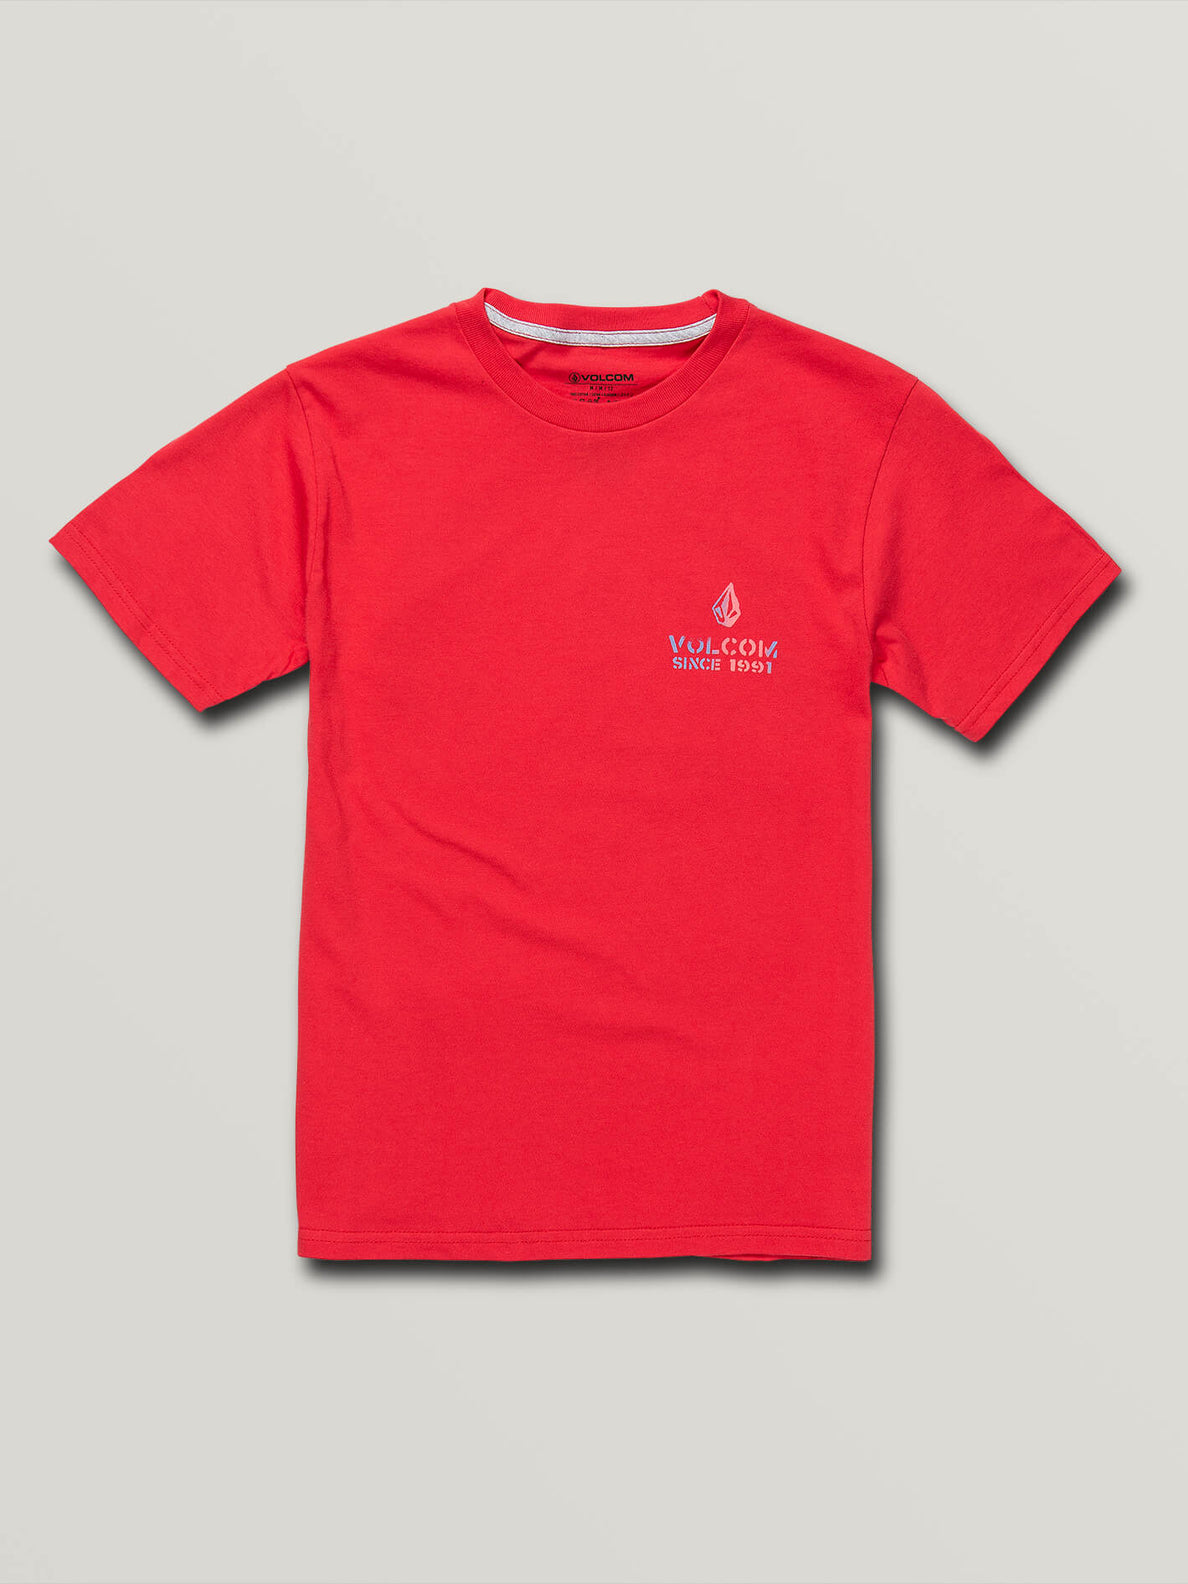 Big Boys Peace Is Progress Short Sleeve Tee In True Red, Front View